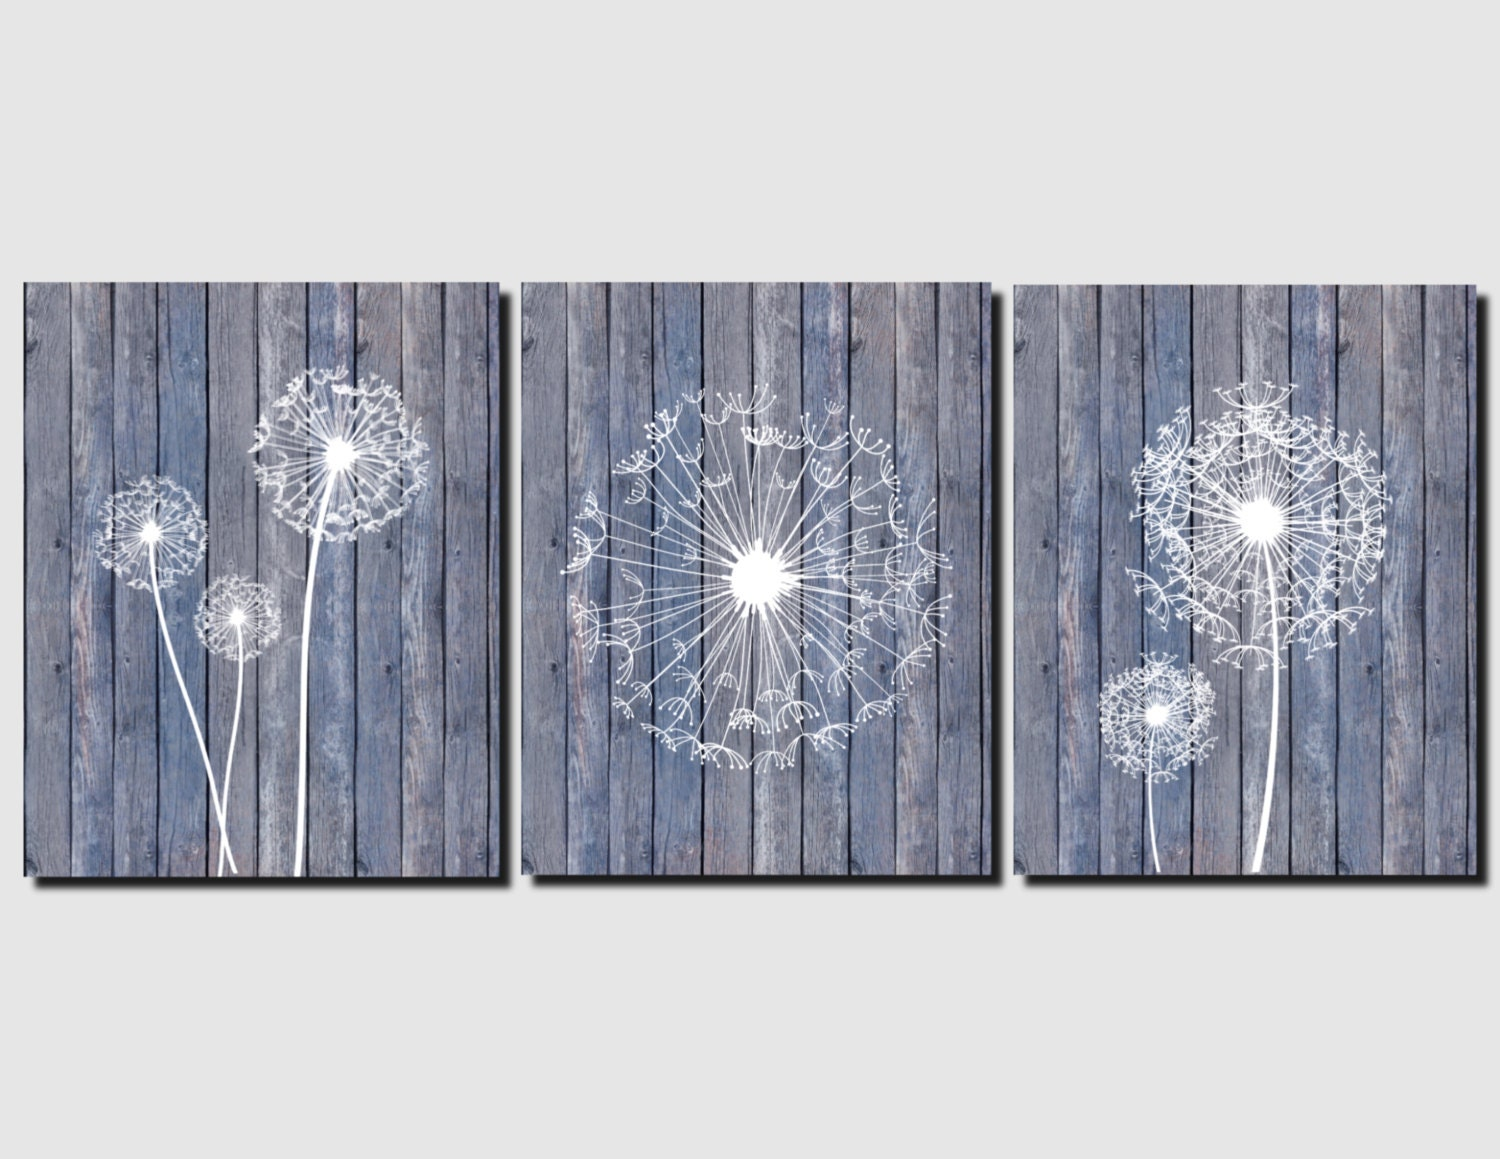 Dandelion Wall Art Canvas Or Prints Beach Home Decor Blue